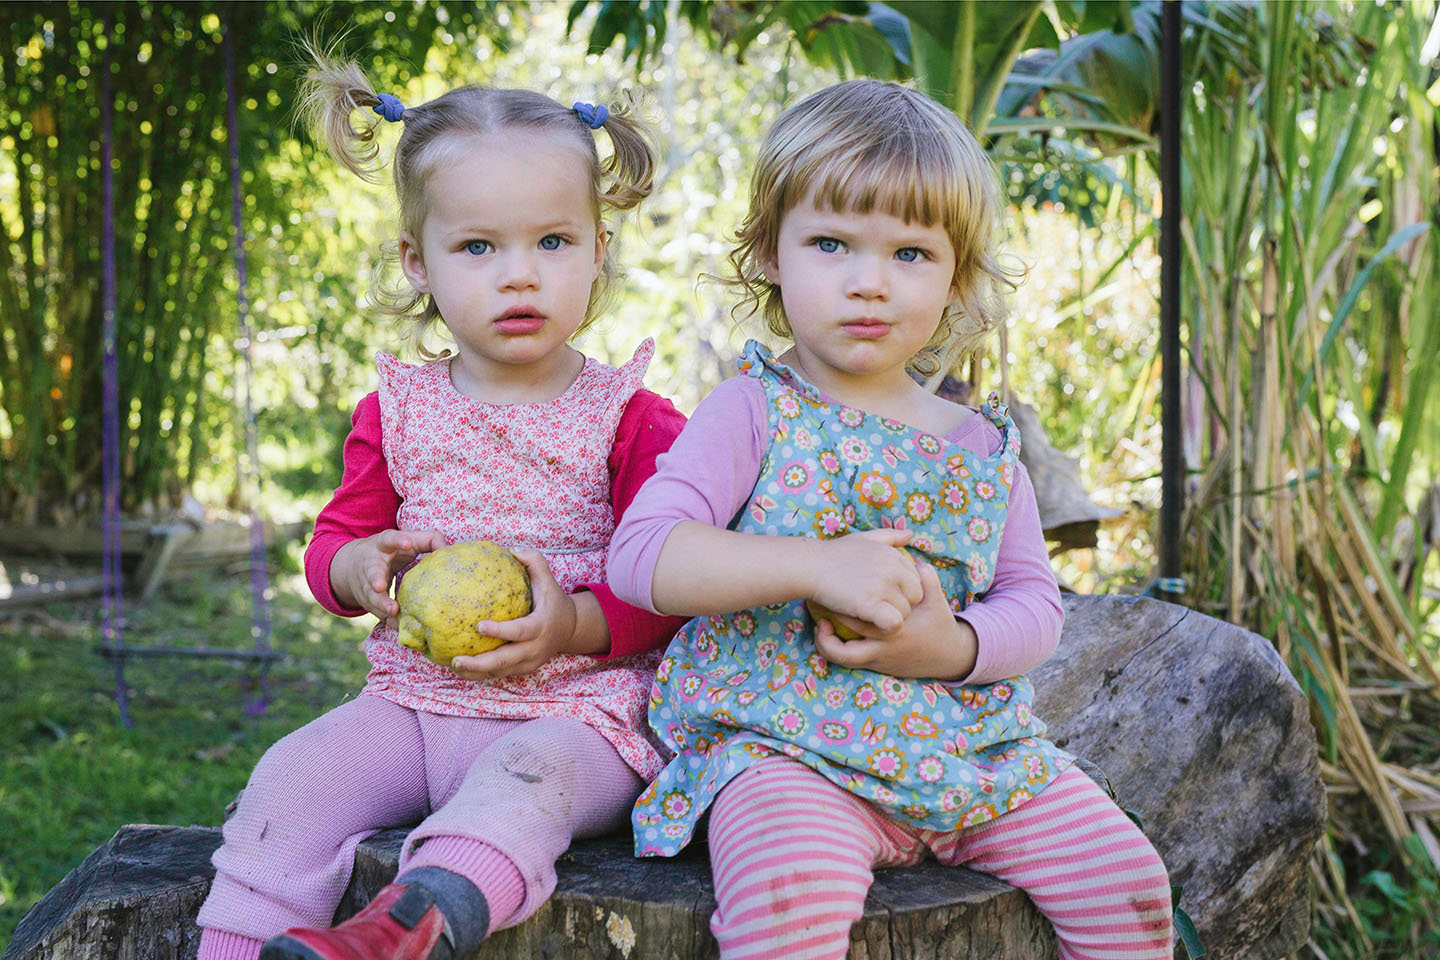 Twins, children, childhood, family photography, Alice Payne photography